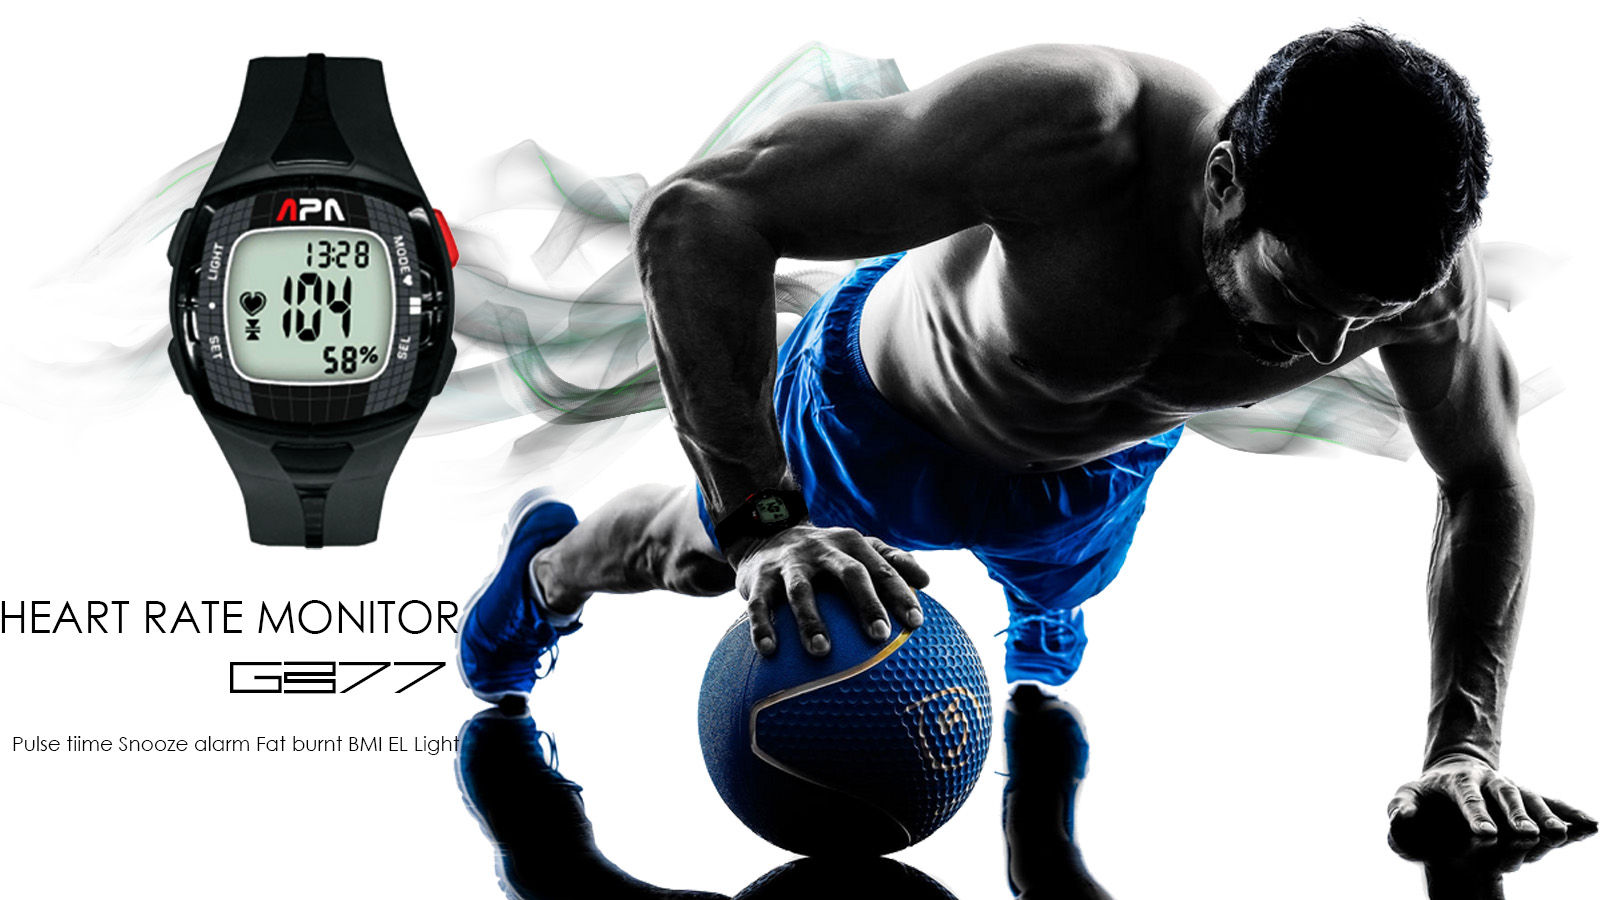 APA GB77 HEART RATE MONITOR